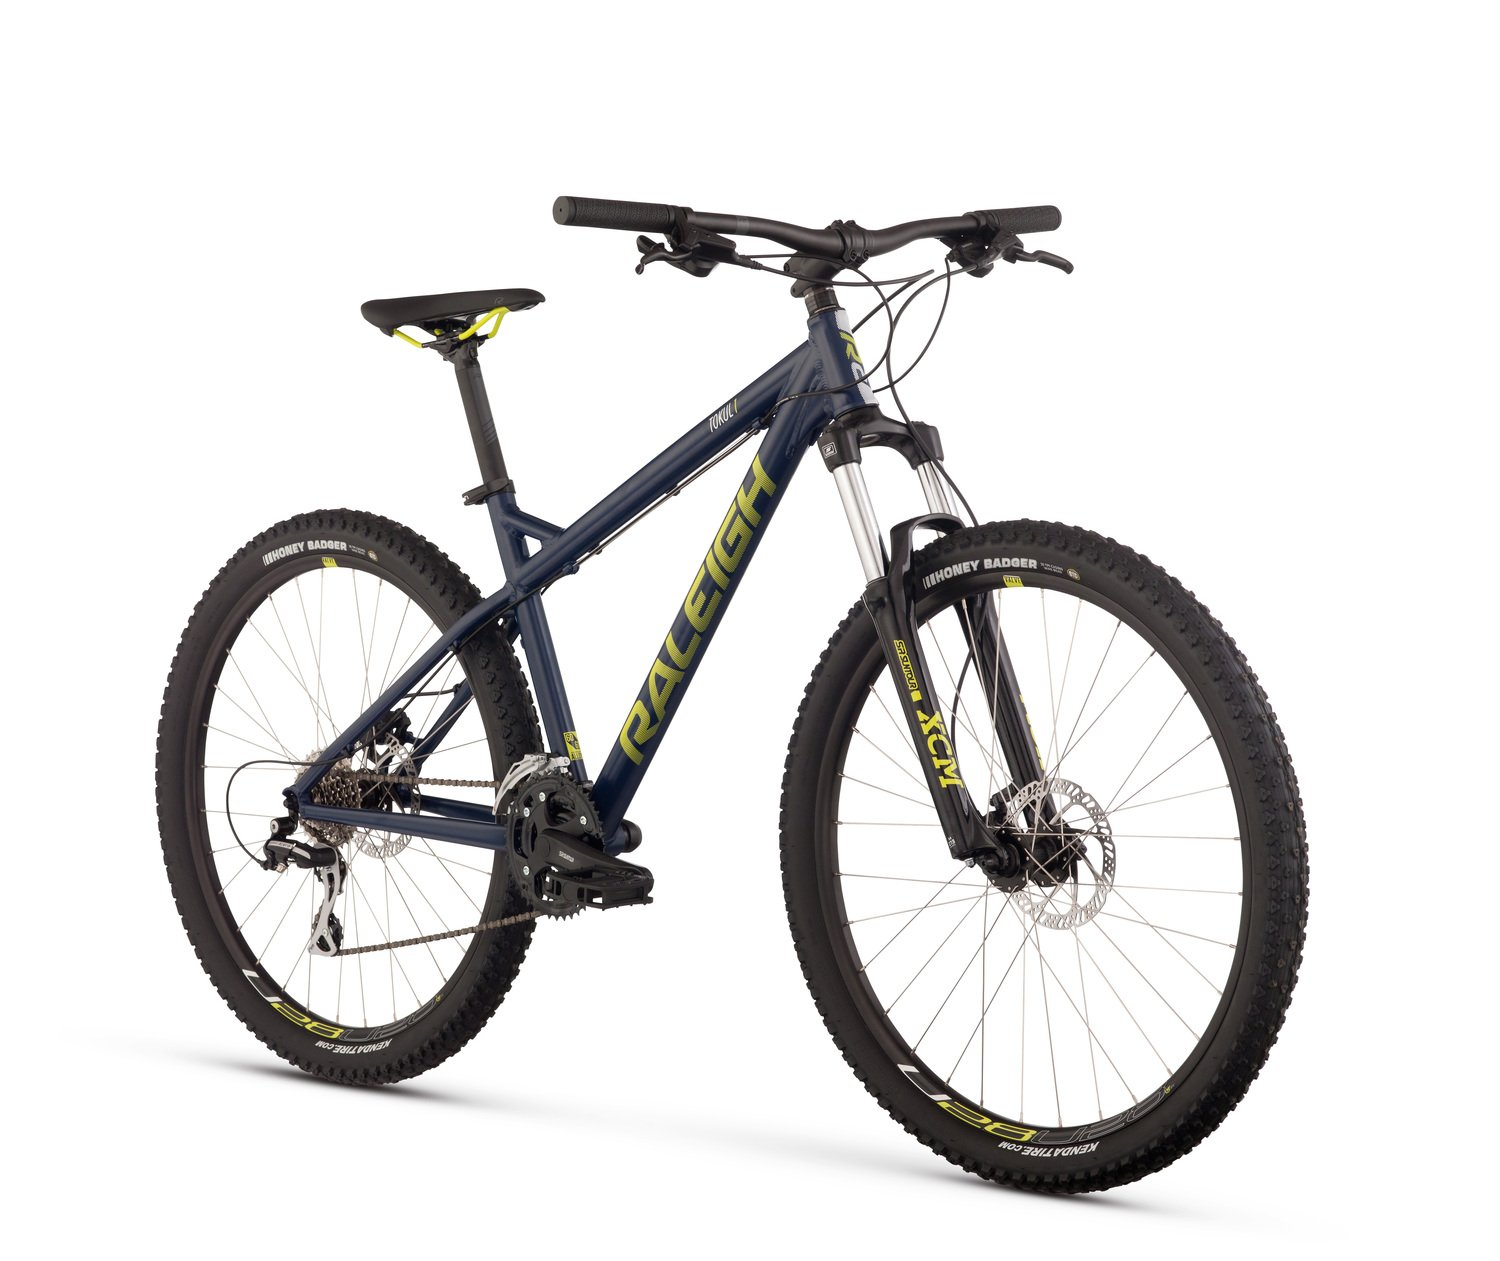 Best Mountain Bikes Reviews for Adventure Tours